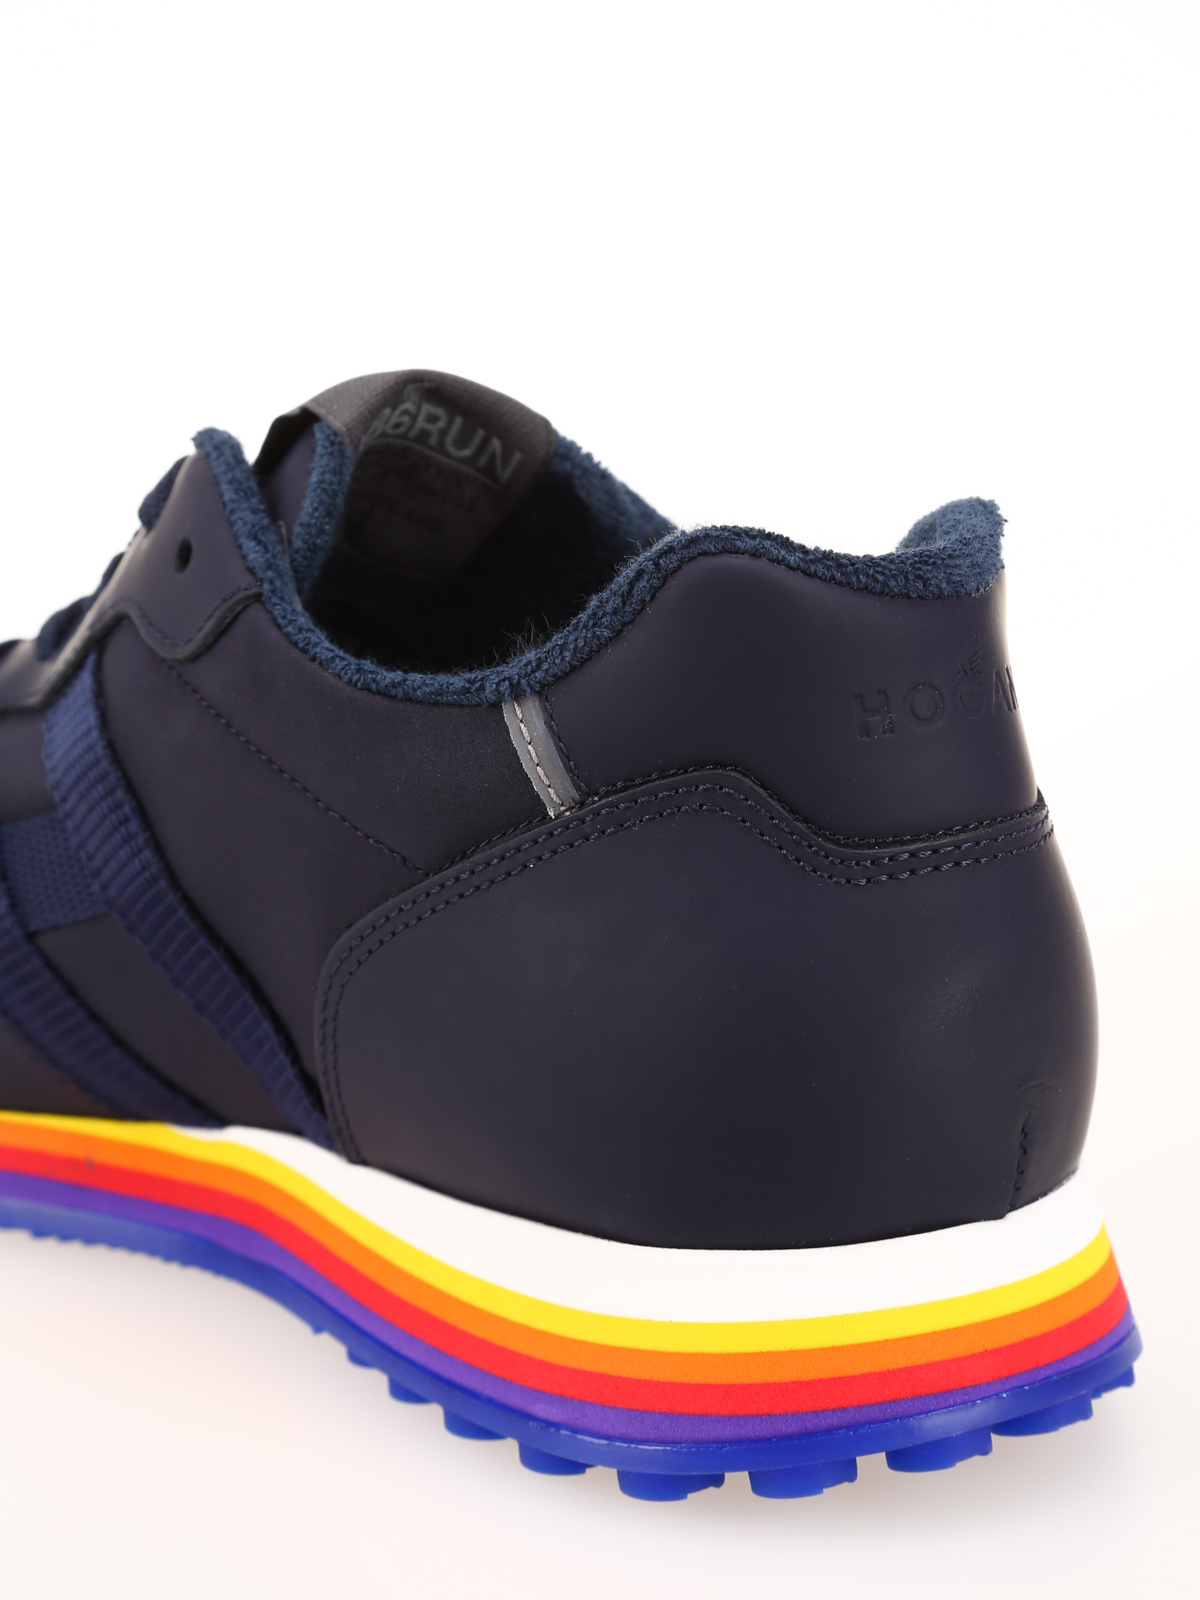 Hogan - Rainbow sole lace-up sneakers - trainers - GYM4500AN51L70773Z